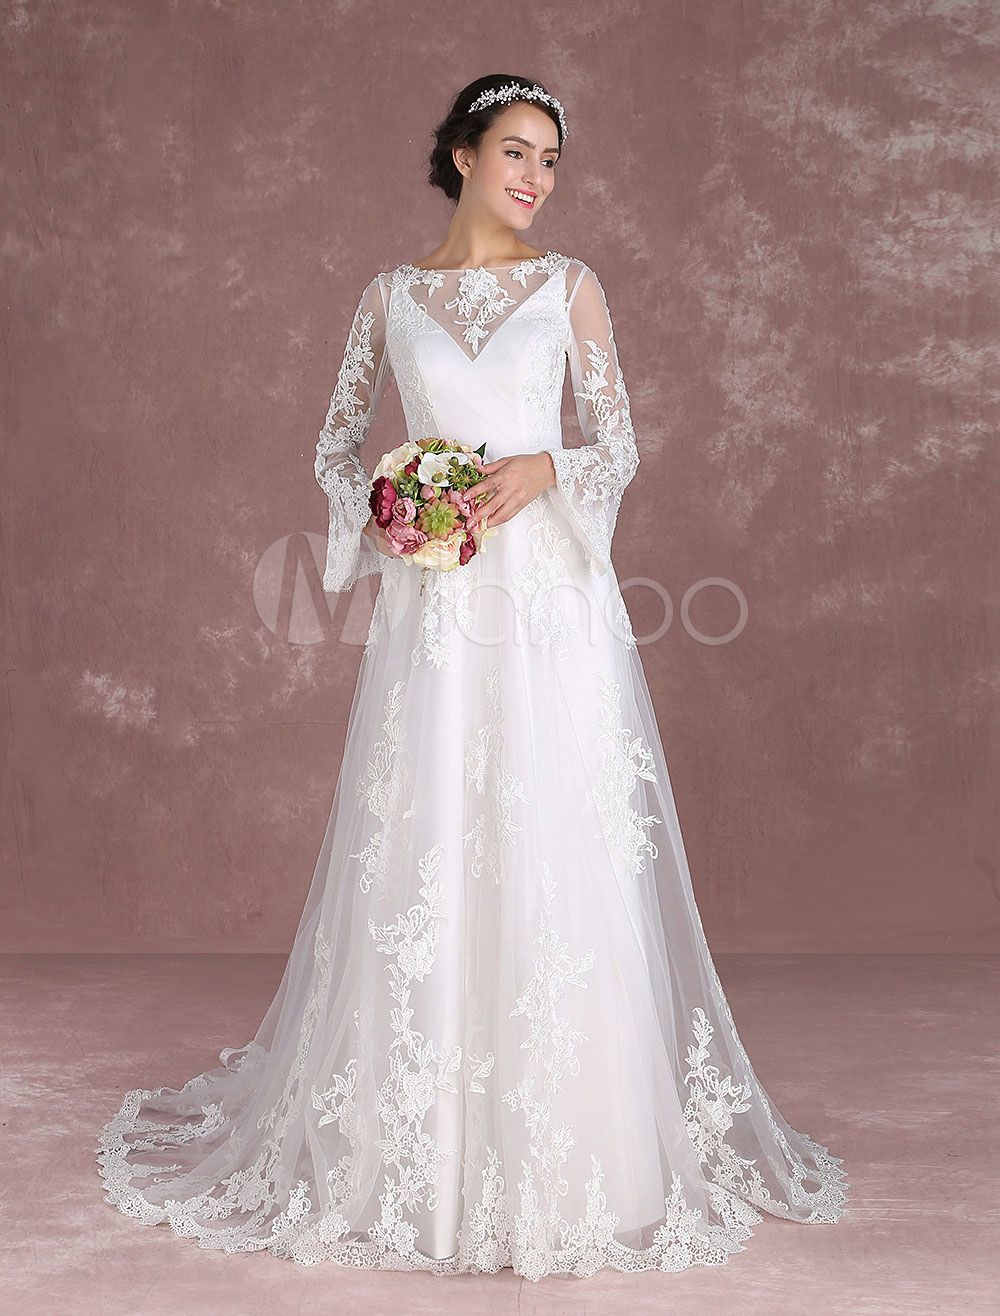 Summer wedding dresses boho lace beach bridal dress bell sleeve